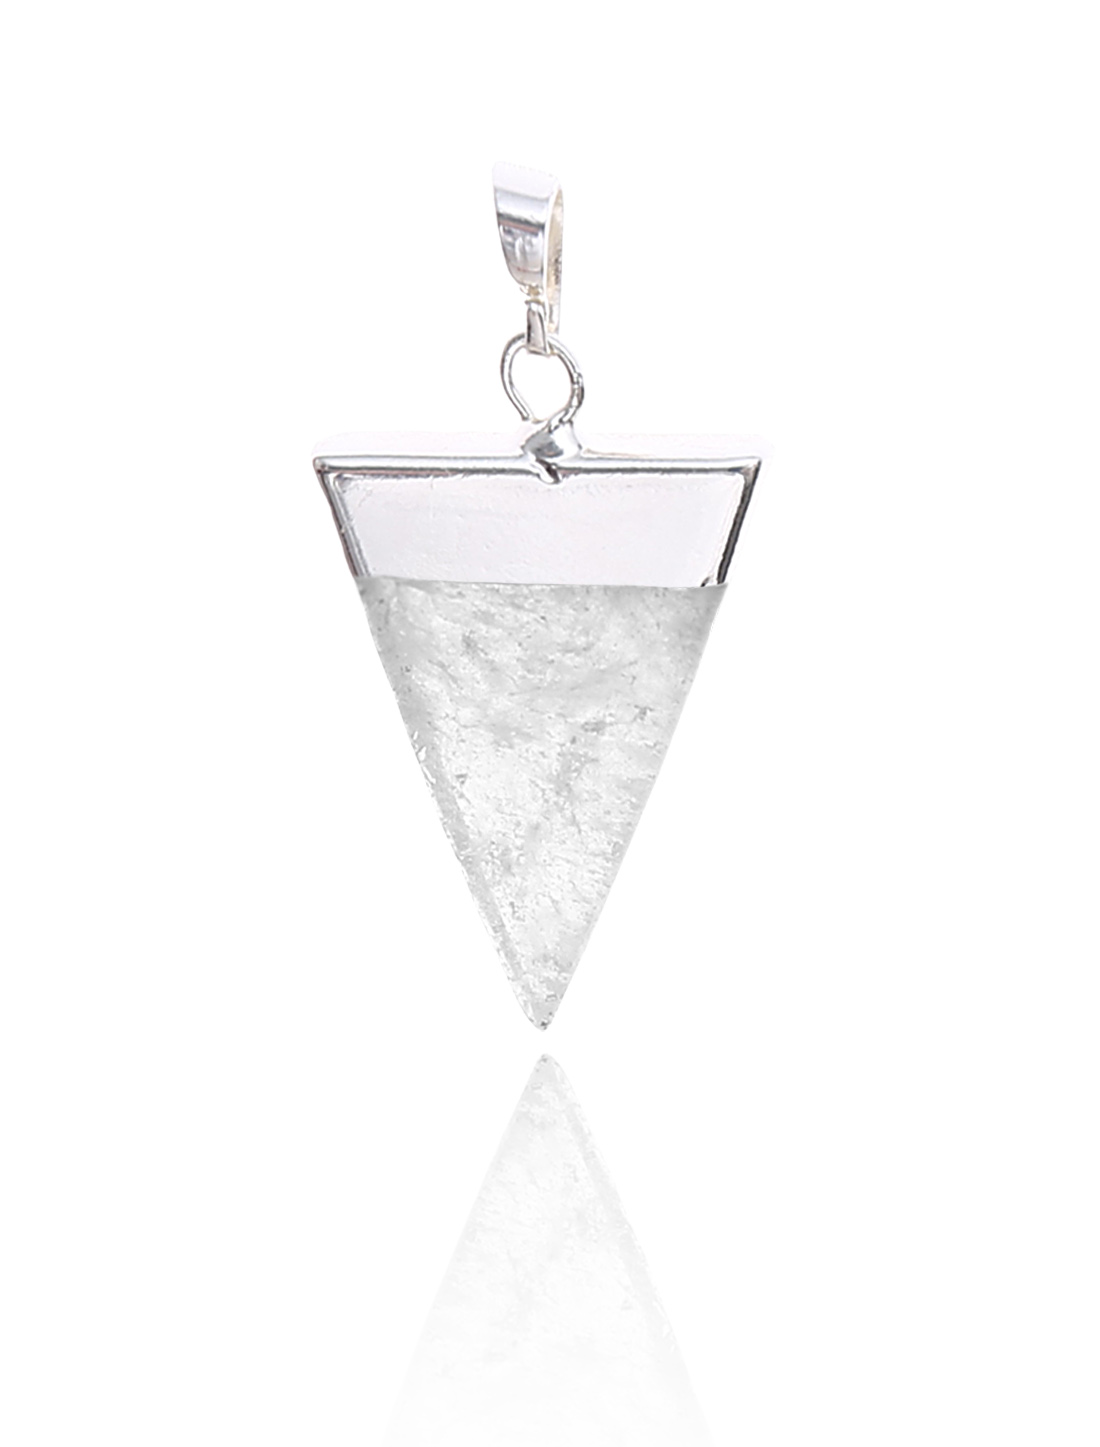 Rock Crystal Pyramid Healing Point Reiki Chakra Gemstone Silver Plated Pendant For Necklace